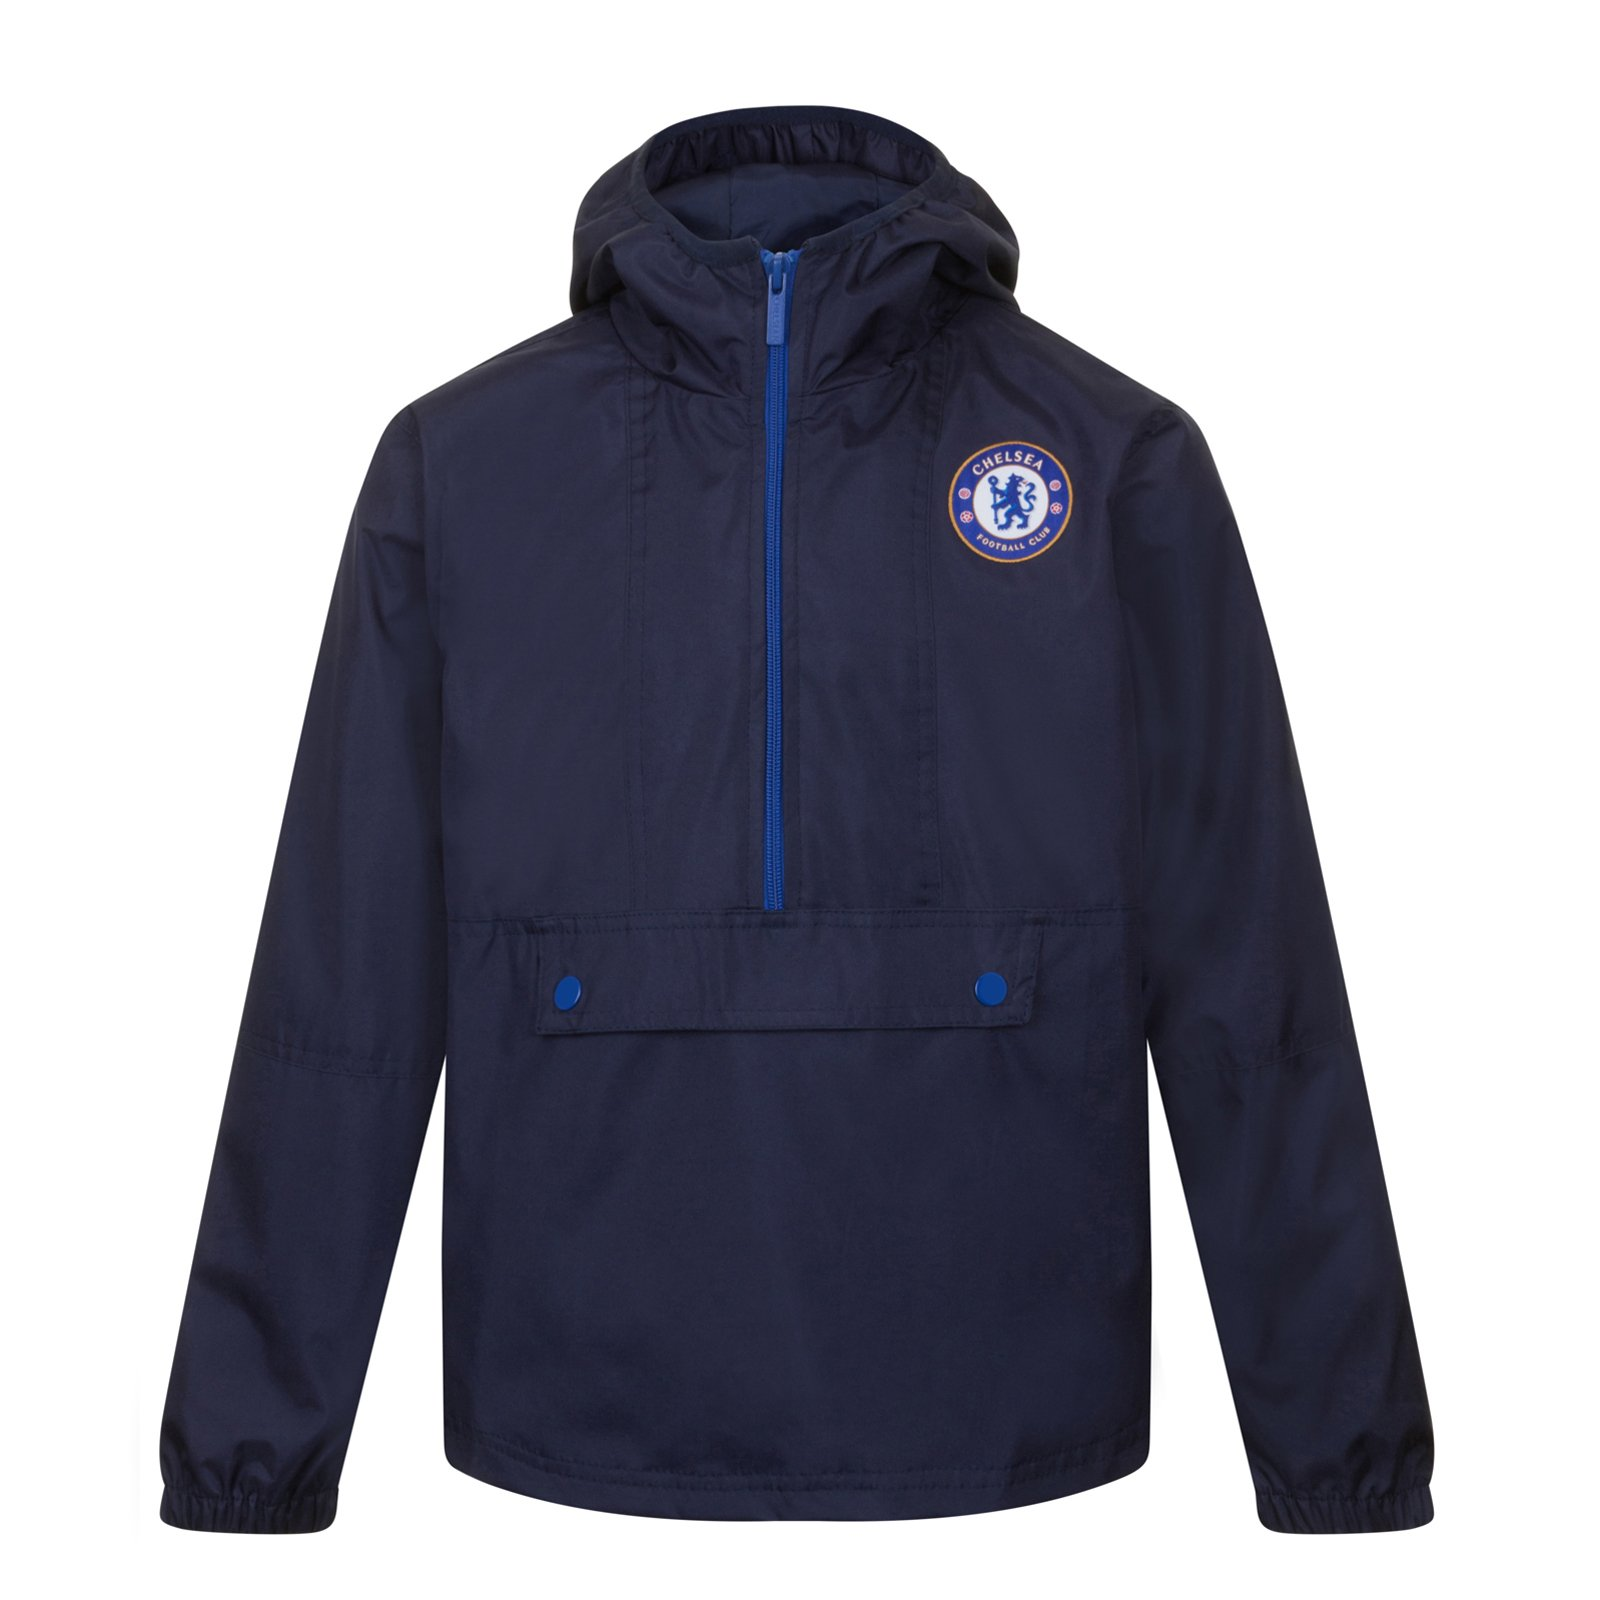 Chelsea FC Official Gift Boys Half Zip Shower Jacket Windbreaker 6-7 Years by Chelsea F.C.